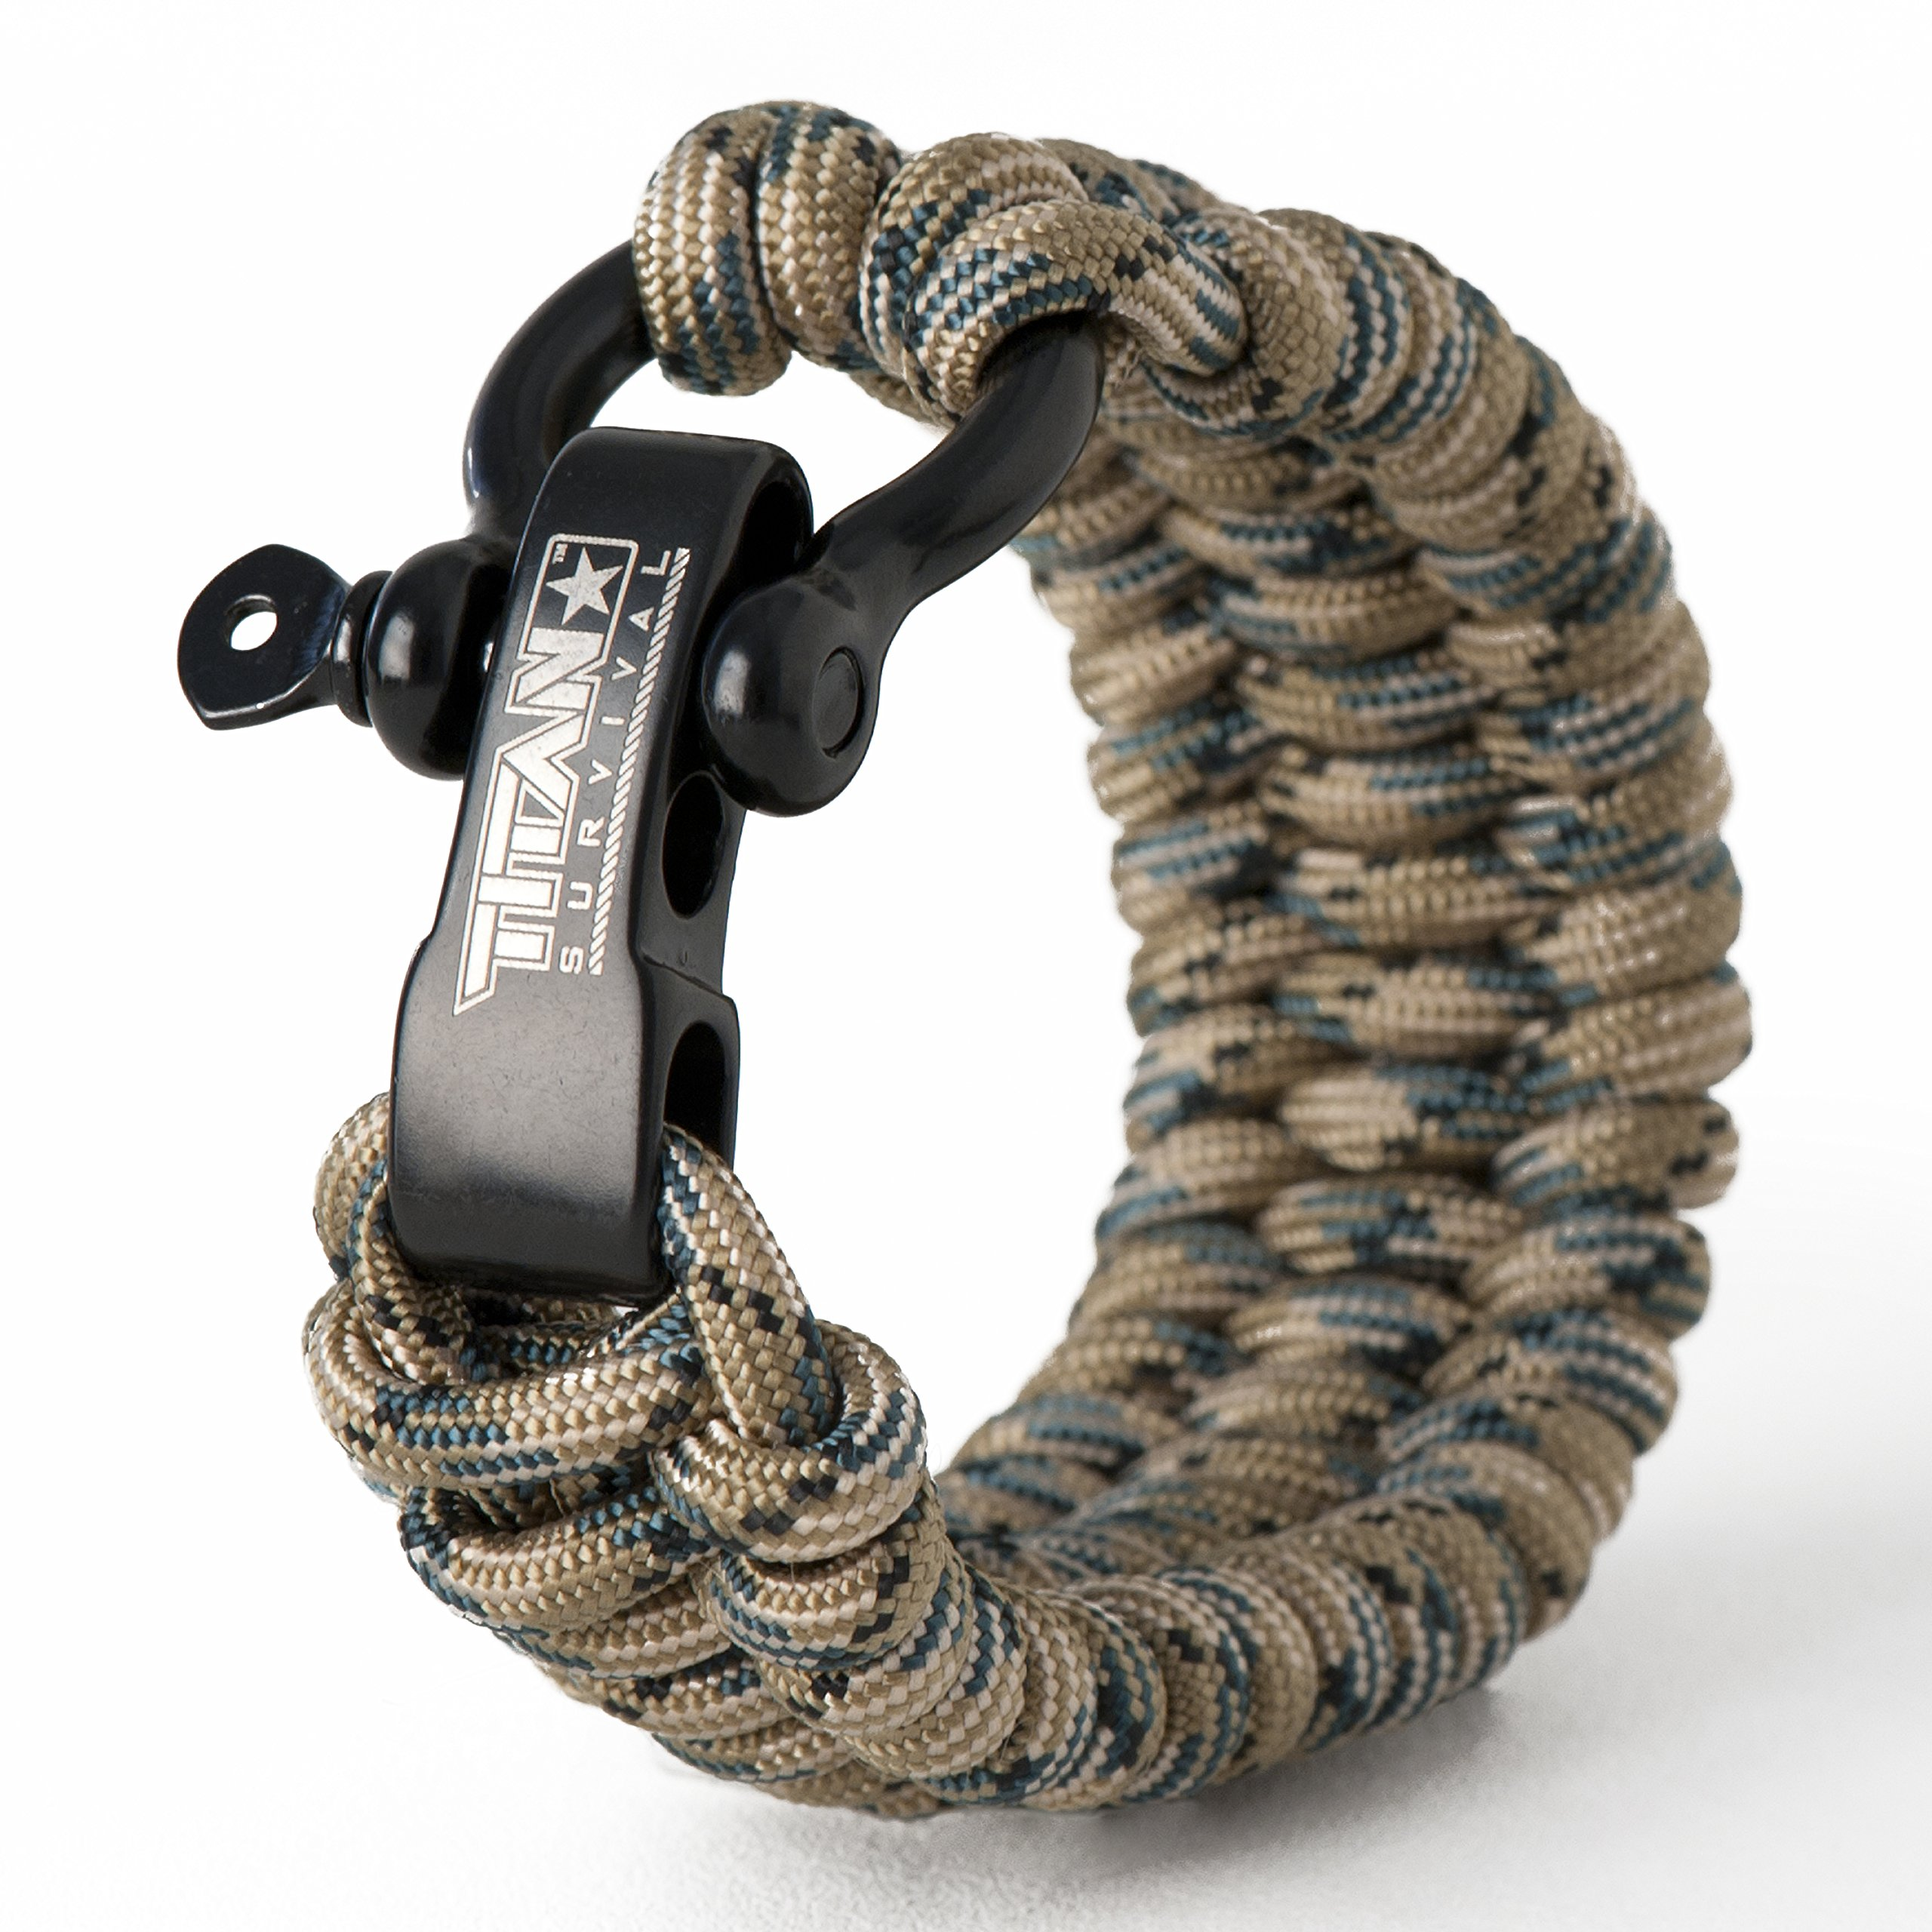 Titan Paracord Survival Bracelet | Forest CAMO | Medium (Fits 7'' - 8'' Wrist) | Made with Authentic Patented SurvivorCord (550 Paracord, Fishing line, Snare Wire, and Waxed Jute for Fires). by Titan Paracord